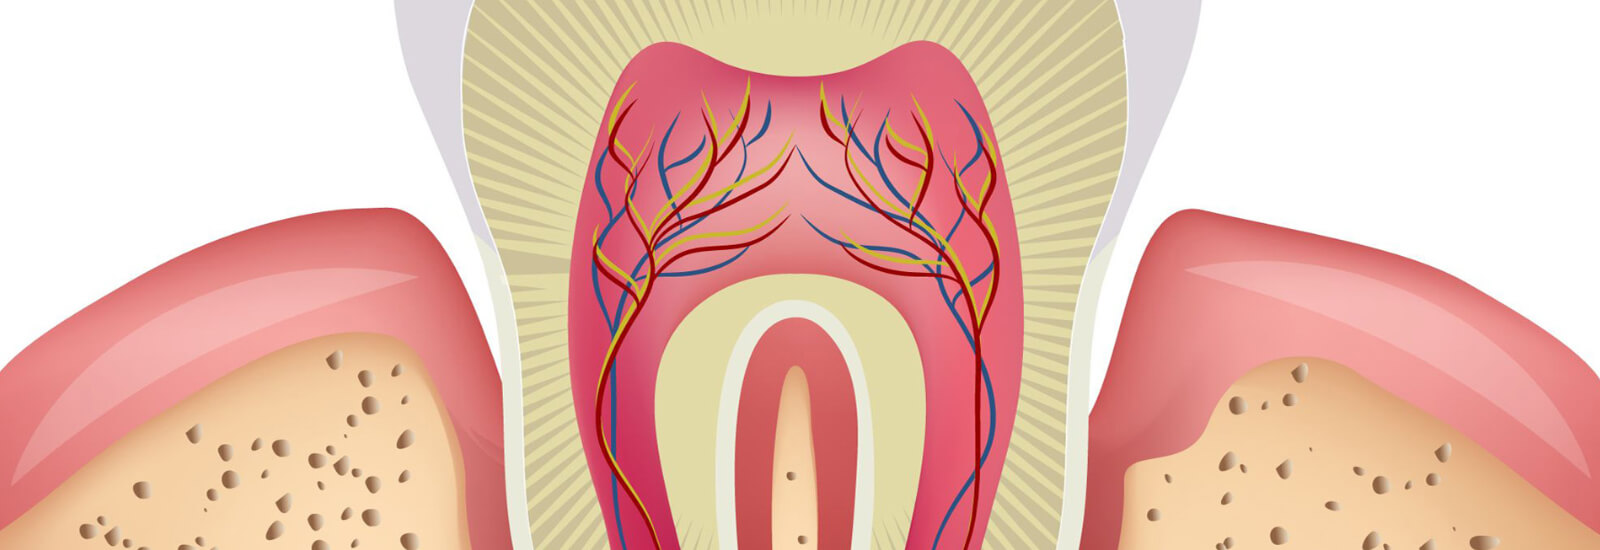 Tooth-Abrasion-and-Erosion-1